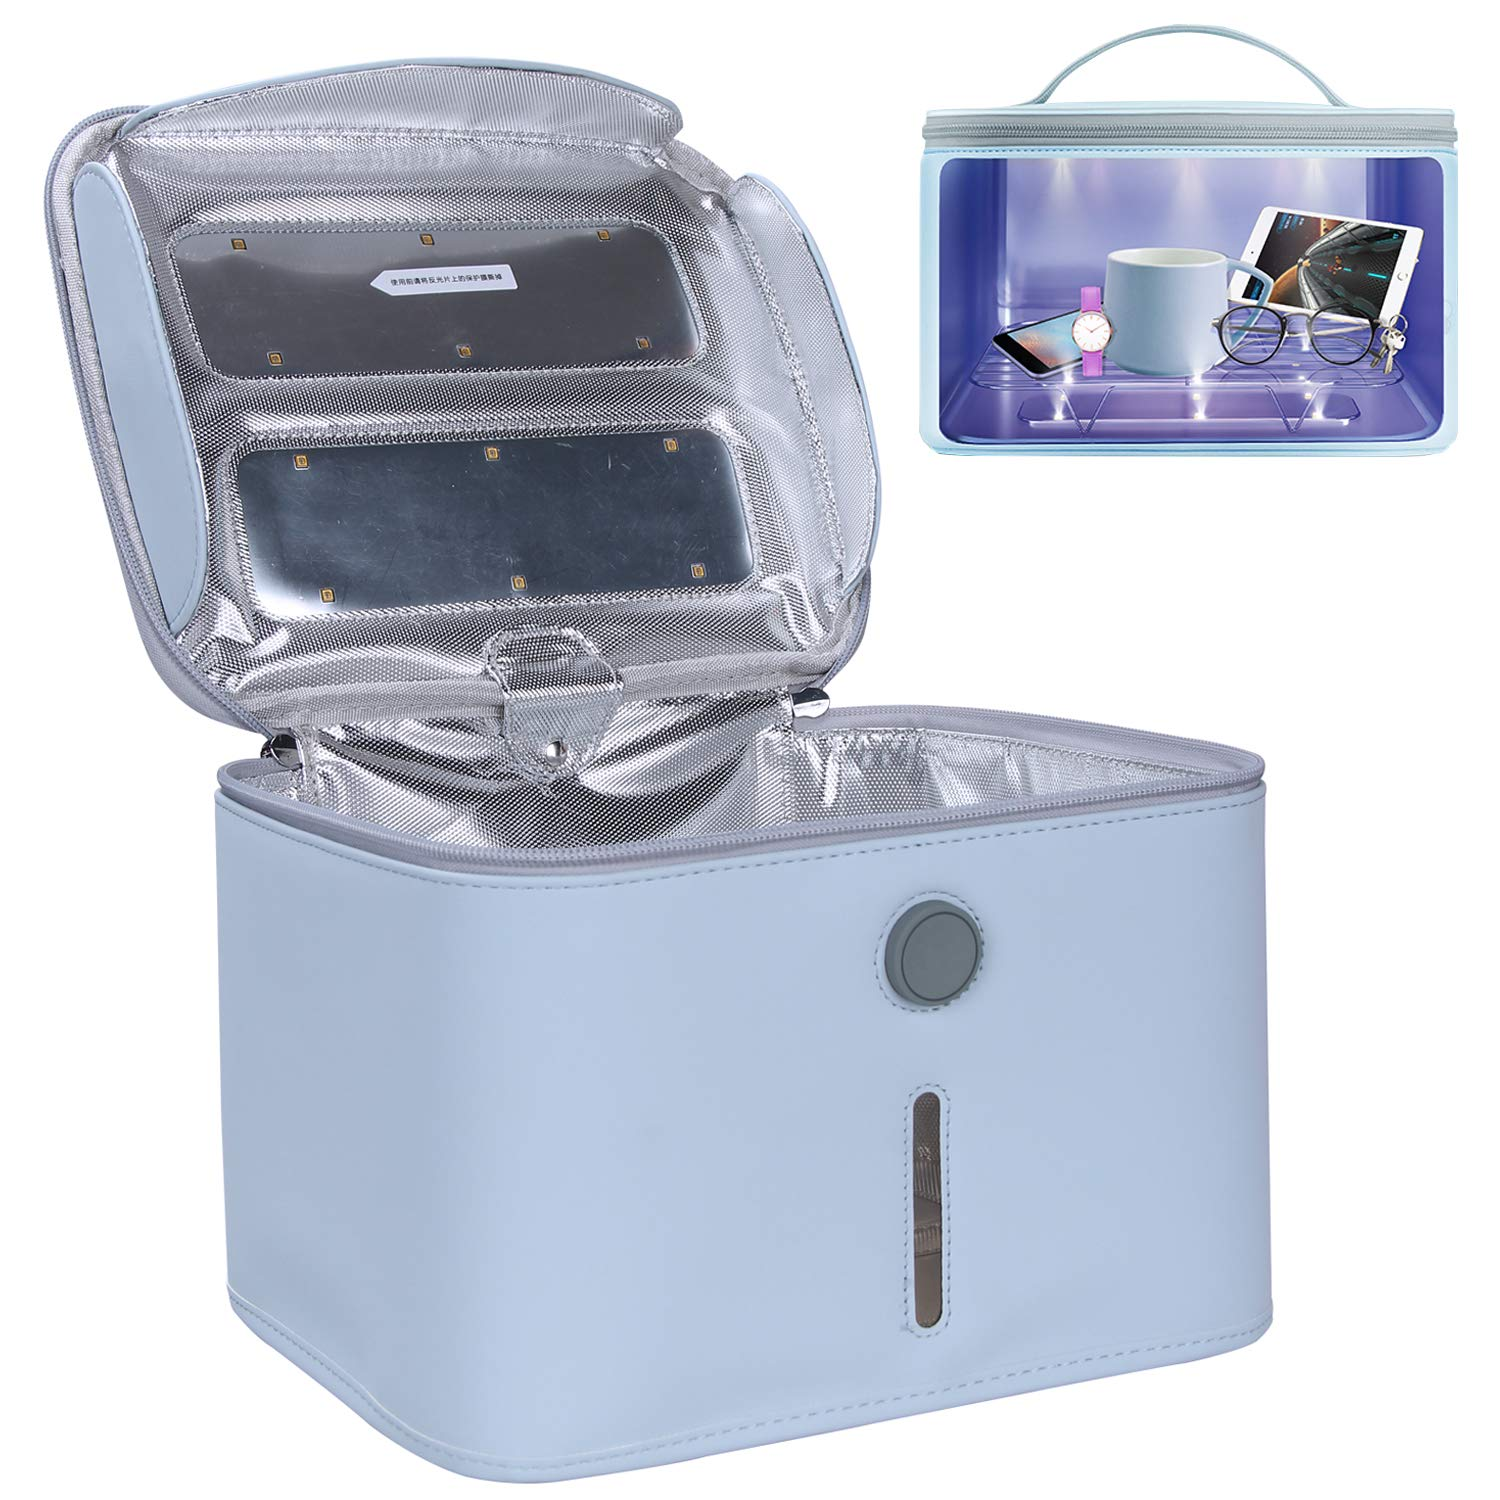 Beauty Tools LED UVC Sterilizer Cleaner Bag Portable Large Size Light Box for Phone UV Sanitizer Box 99/% Cleaned within 3 mins Blue